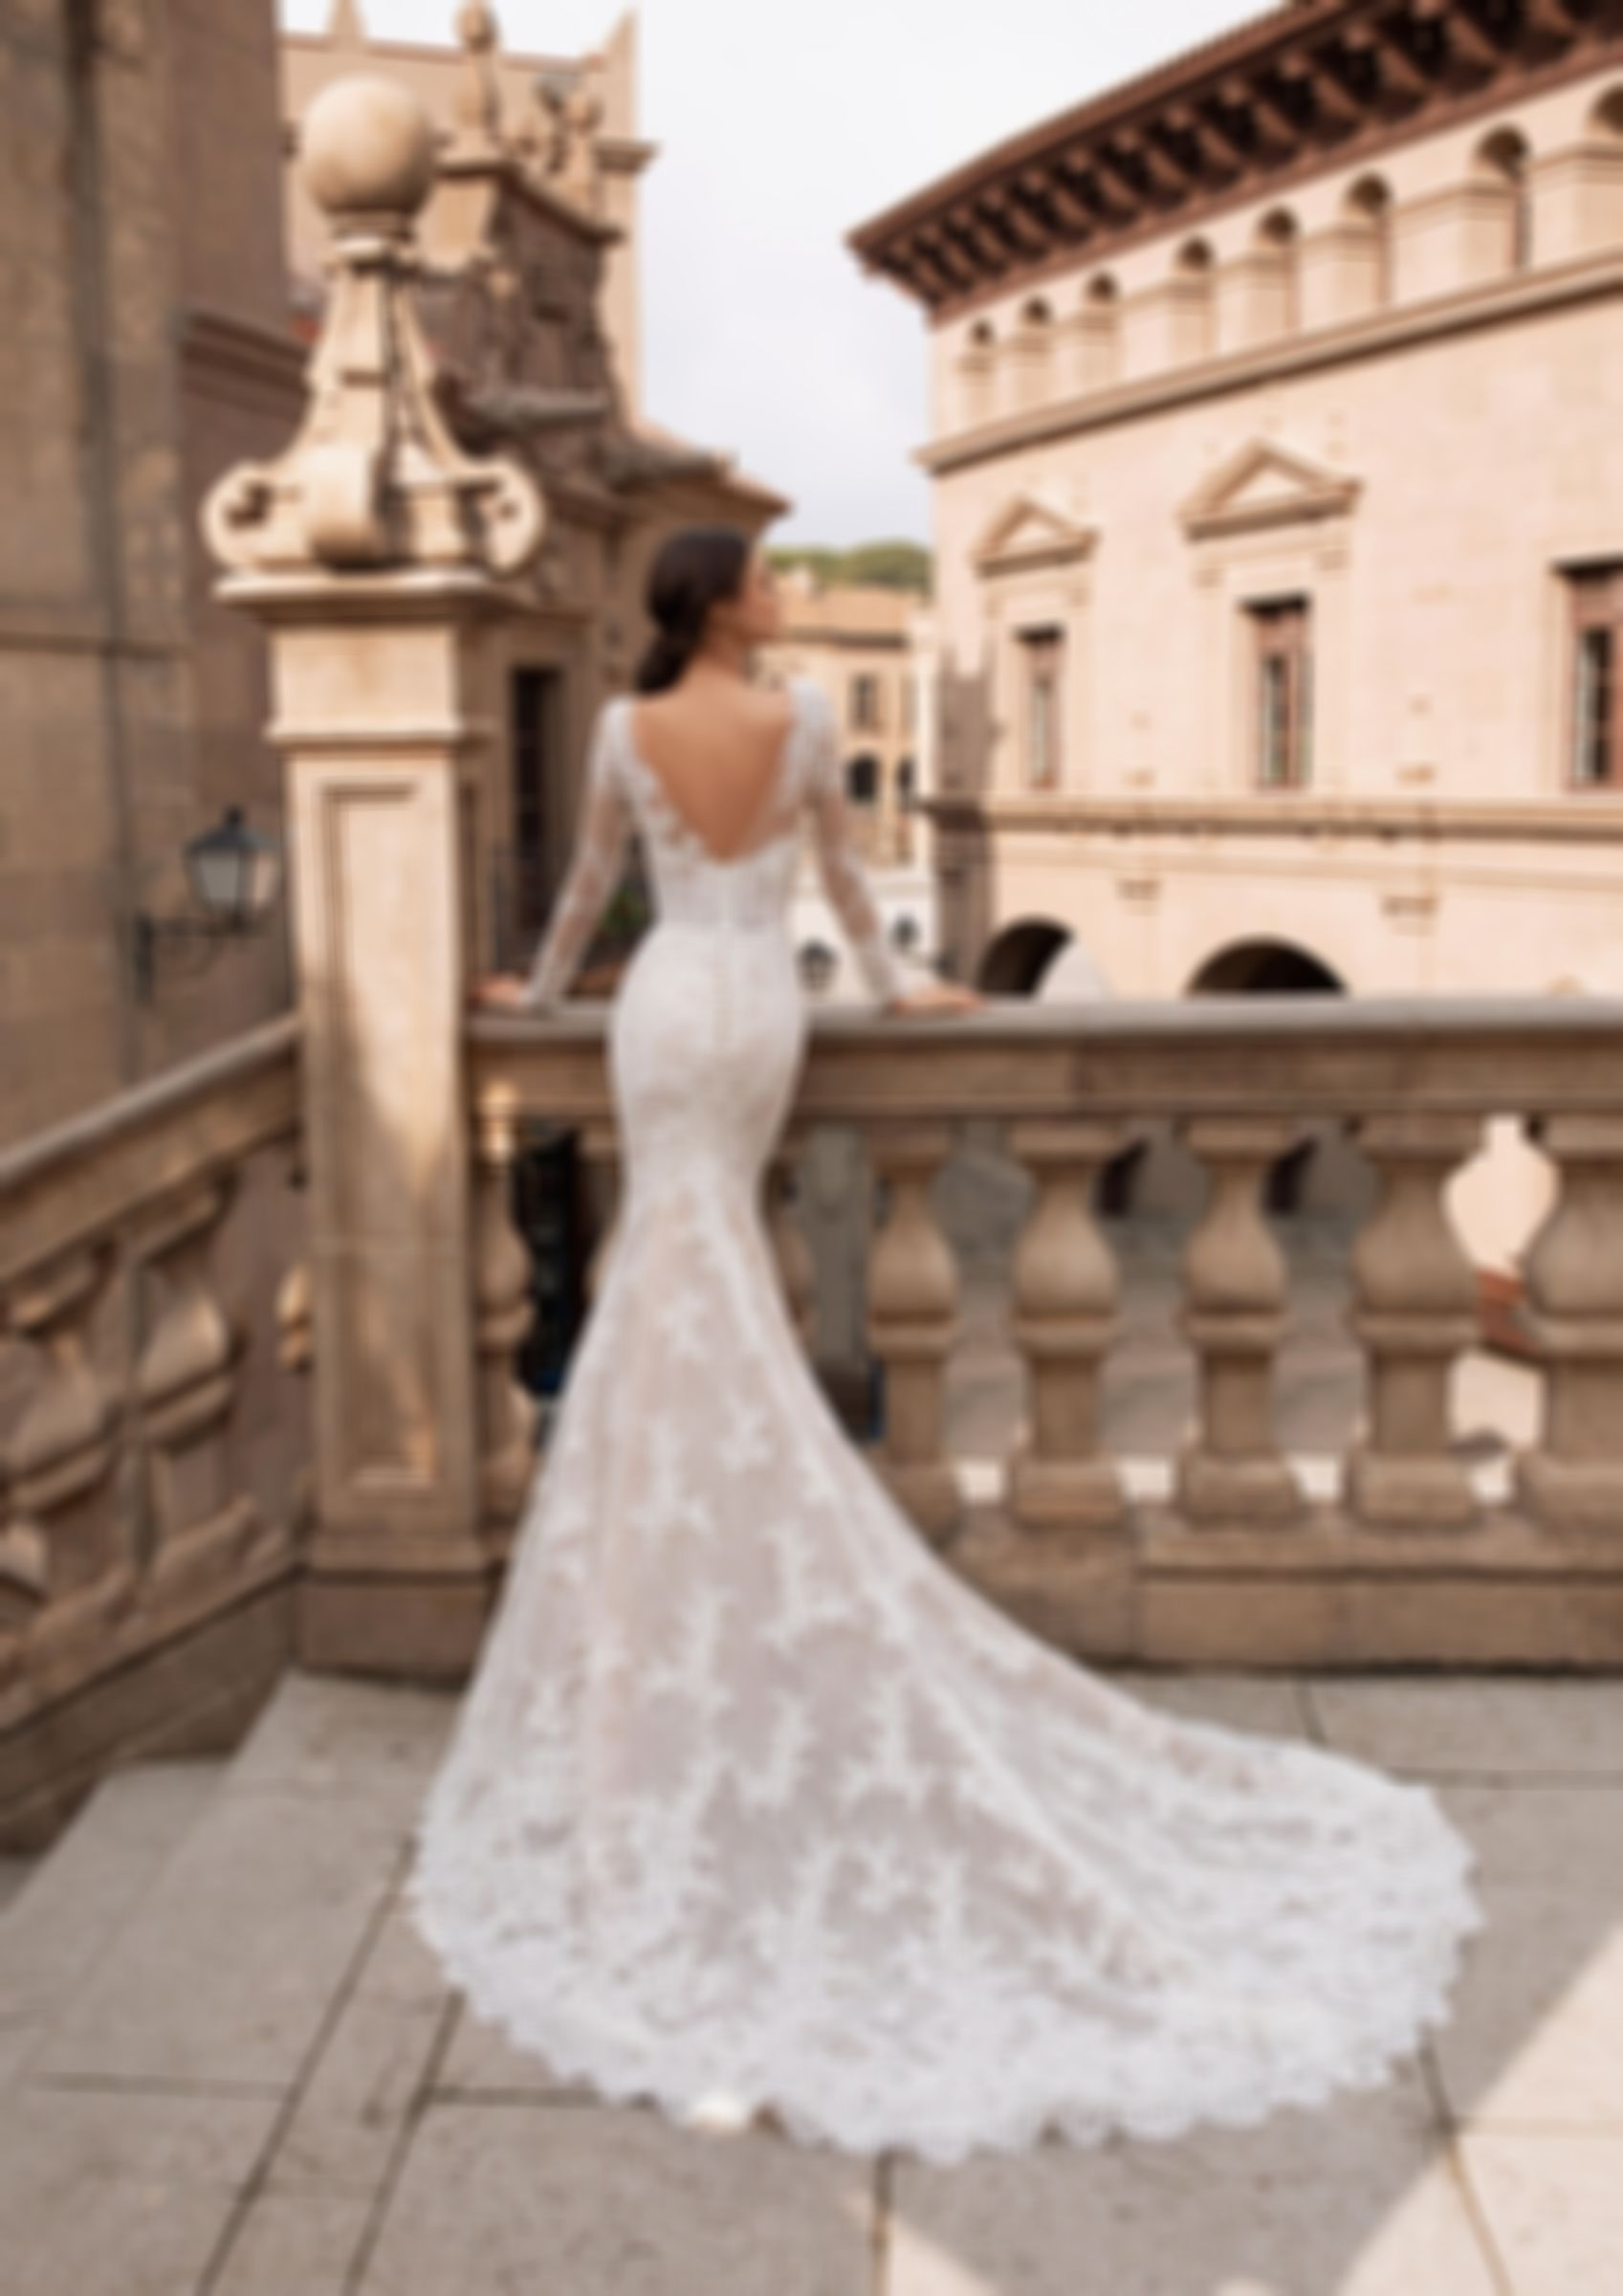 Wedding Dresses Lace Best Places To Have A Bridal Shower Evening Wear For Plus Size Ladies Modern Wedding Dresses Best Way To Store Wedding Dress